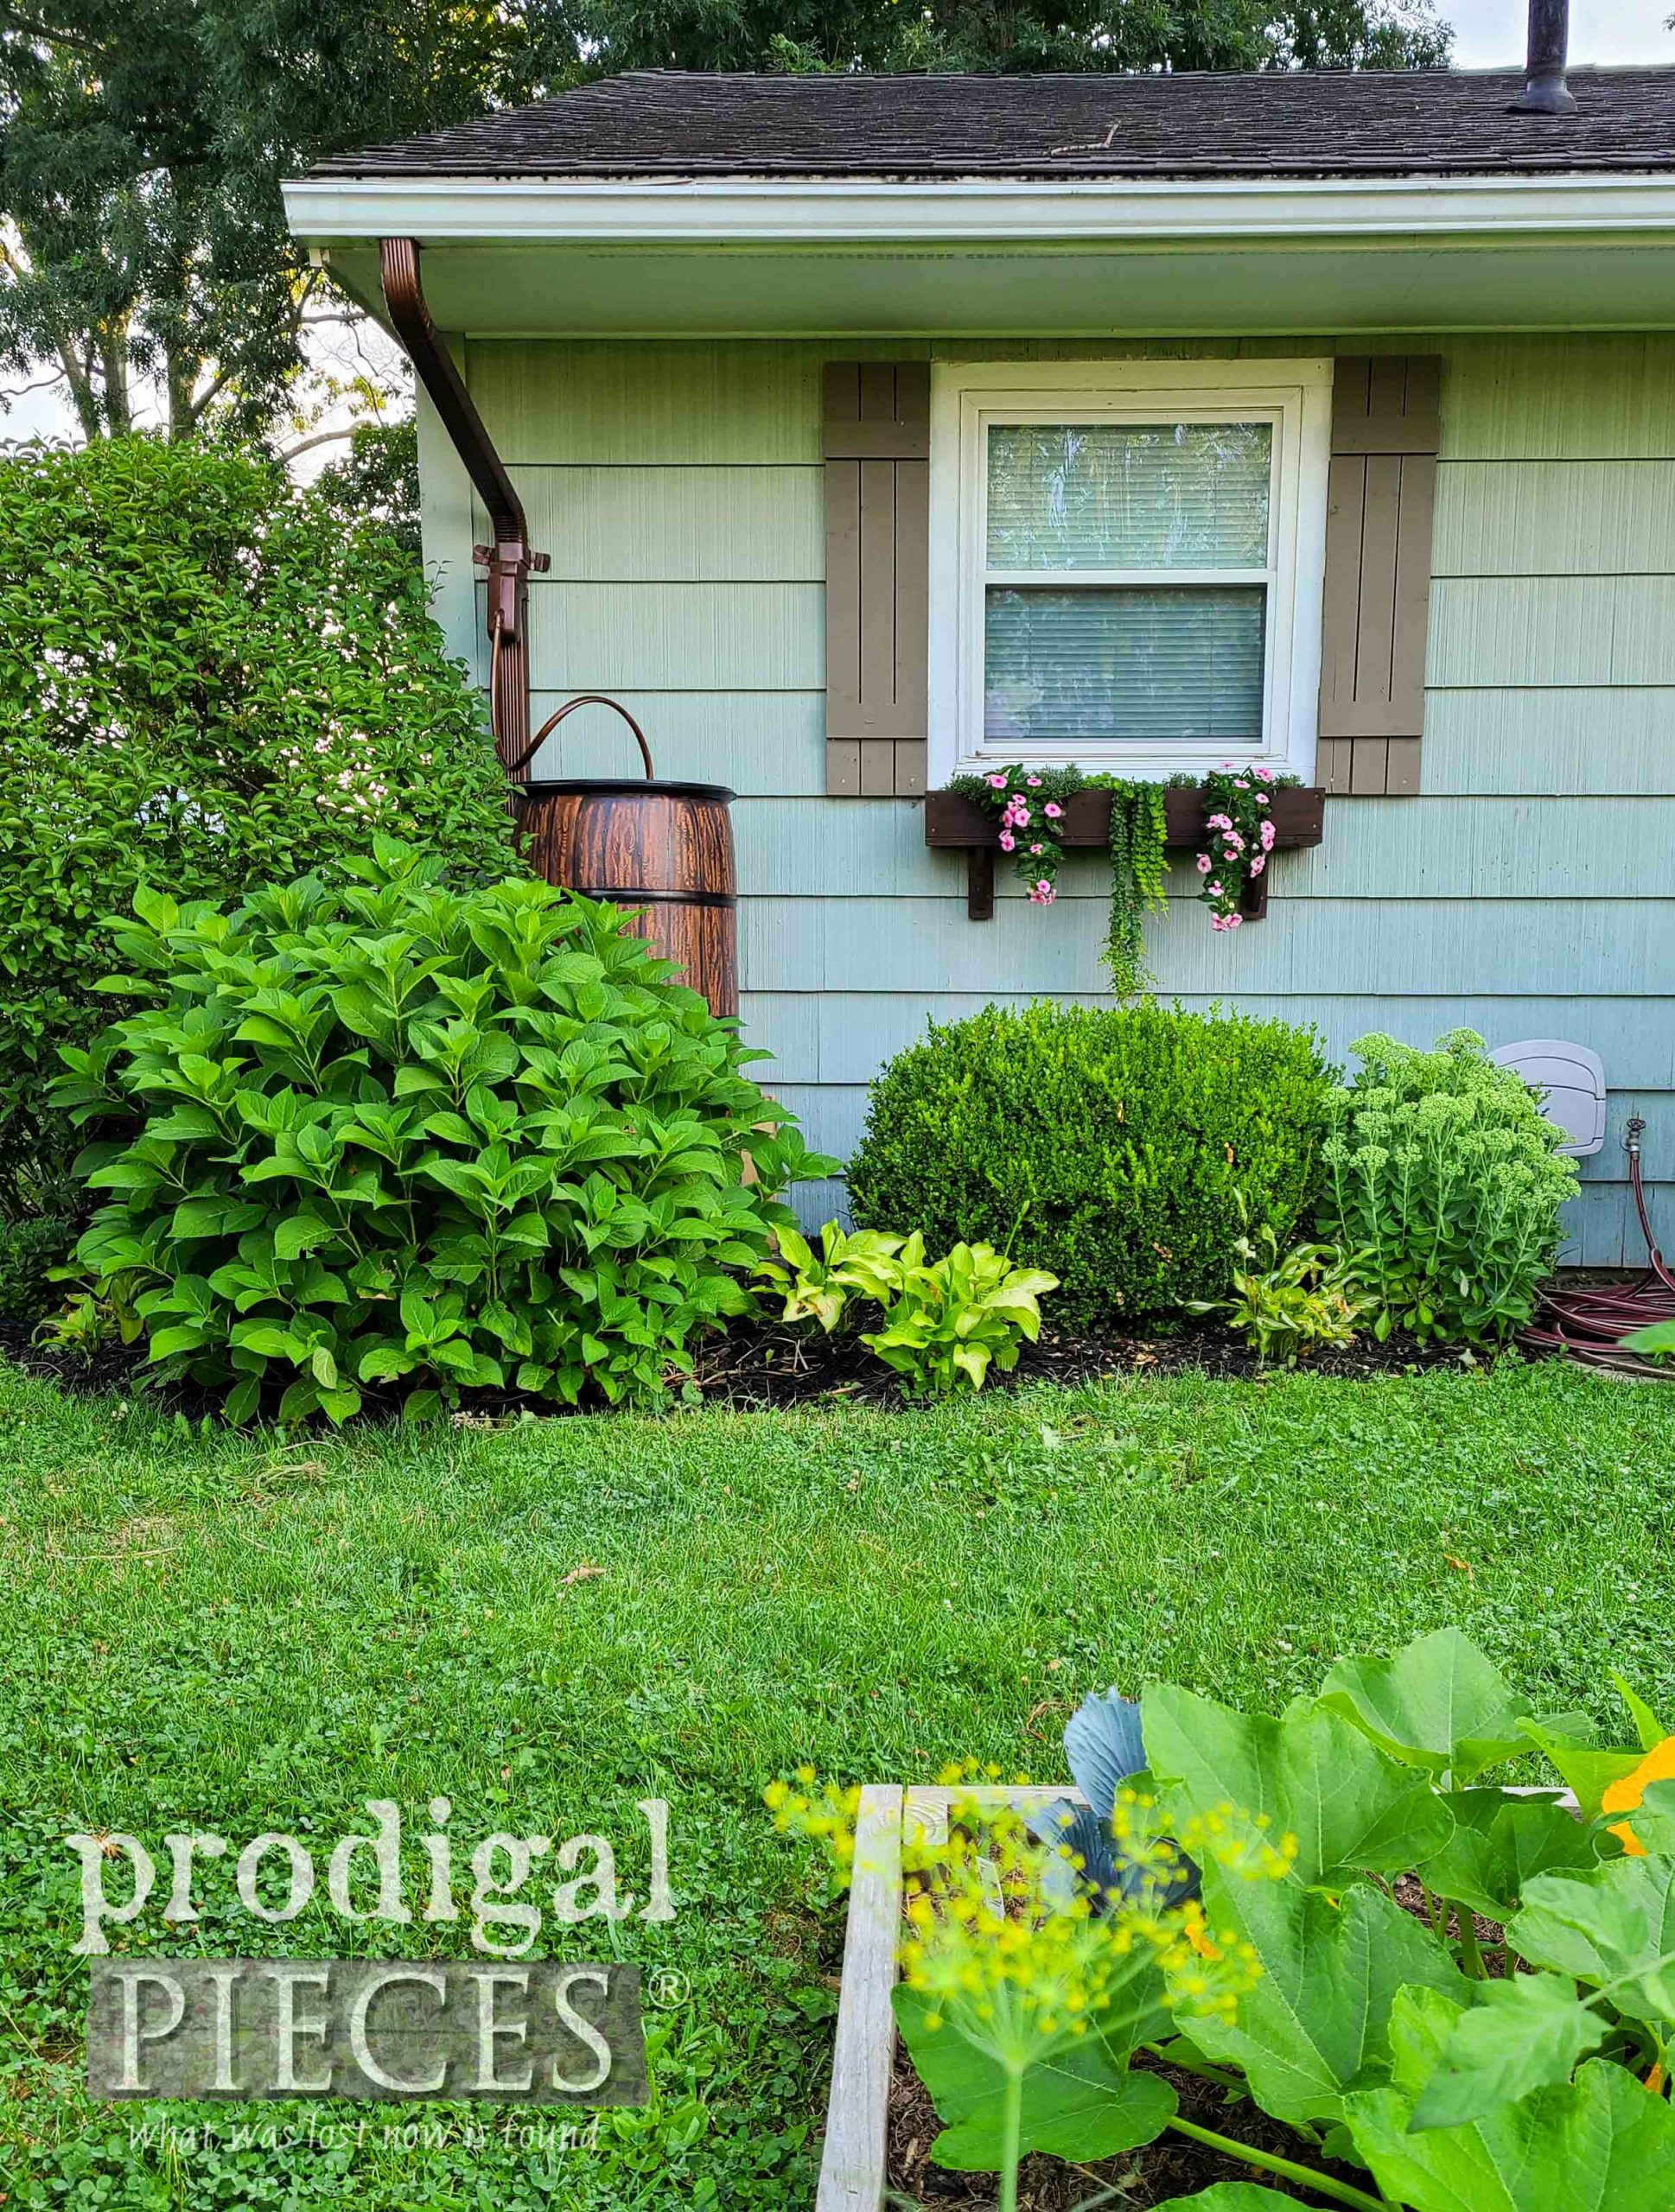 DIY Gardening with Raised Beds and Rain Barrel by Larissa of Prodigal Pieces | prodigalpieces.com #prodigalpieces #diy #garden #selfsufficient #home